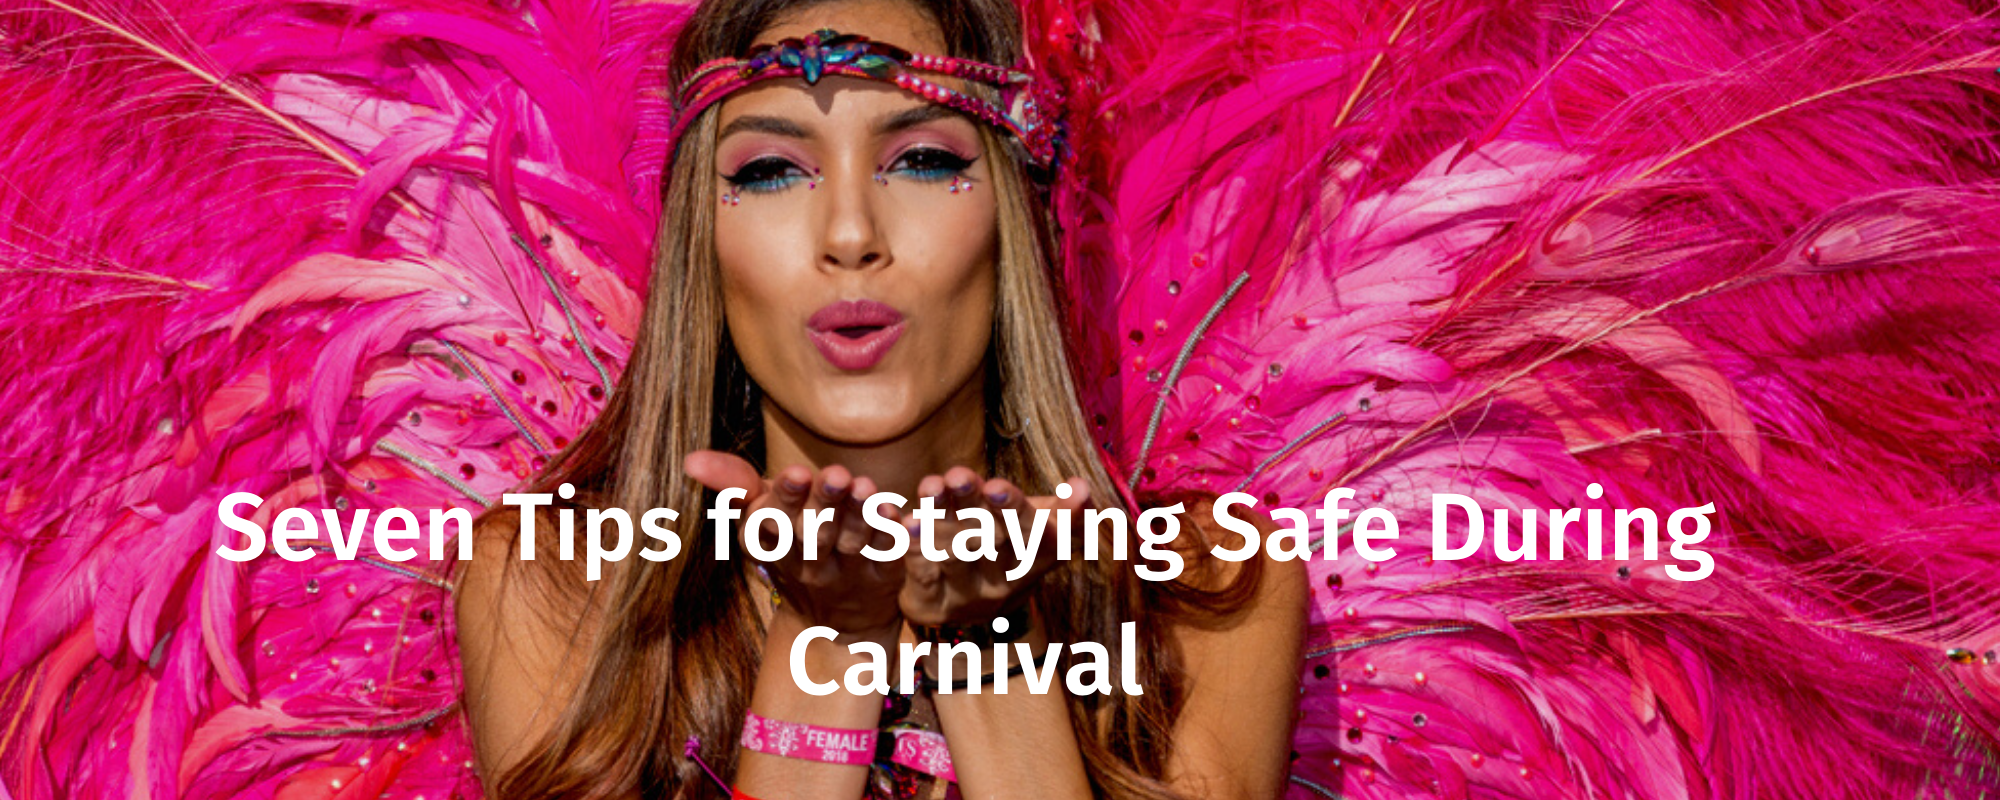 Seven Tips for Staying Safe During Carnival